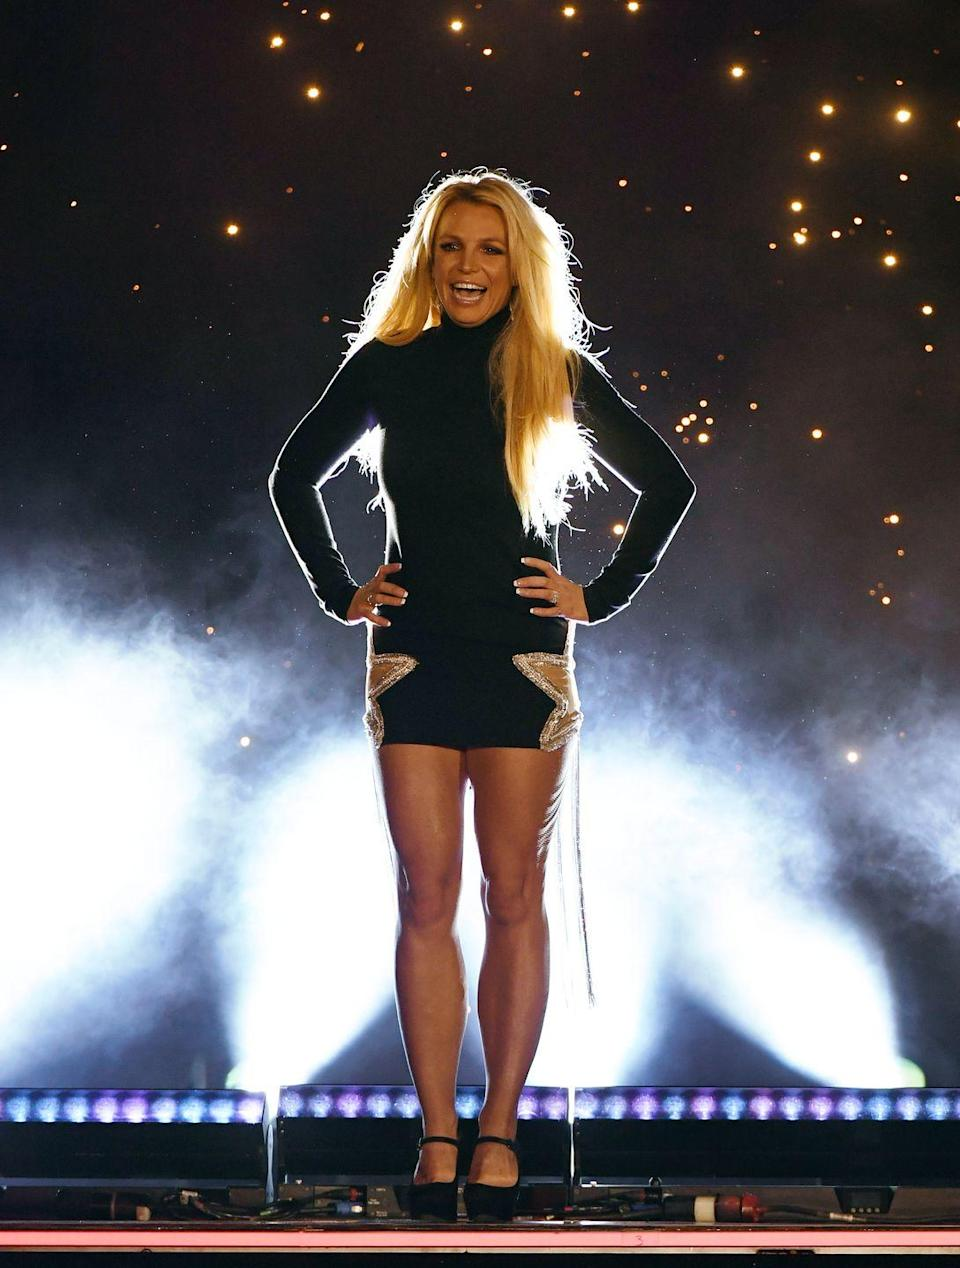 """<p>With her cute bows, Britney made it pretty far in the competition, but despite <a href=""""https://www.youtube.com/watch?v=wWuK5EnXaWU"""" rel=""""nofollow noopener"""" target=""""_blank"""" data-ylk=""""slk:her powerful performances"""" class=""""link rapid-noclick-resp"""">her powerful performances</a>, she didn't take home the top prize. However, she did find her way to the <em>Mickey Mouse Club</em> and then her career took off.</p>"""